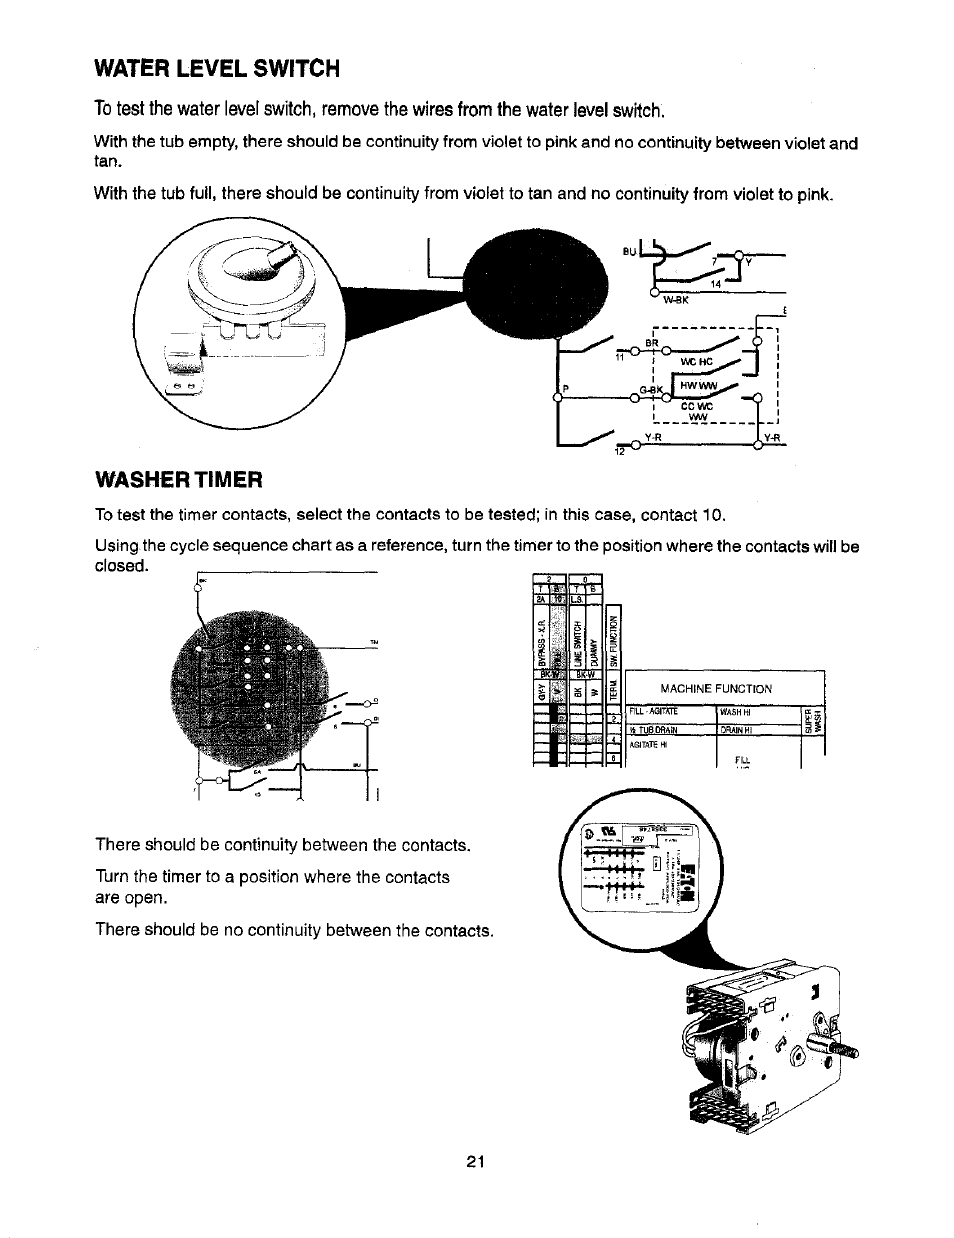 Washer timer, Water level switch | Whirlpool Thin Twin User Manual on